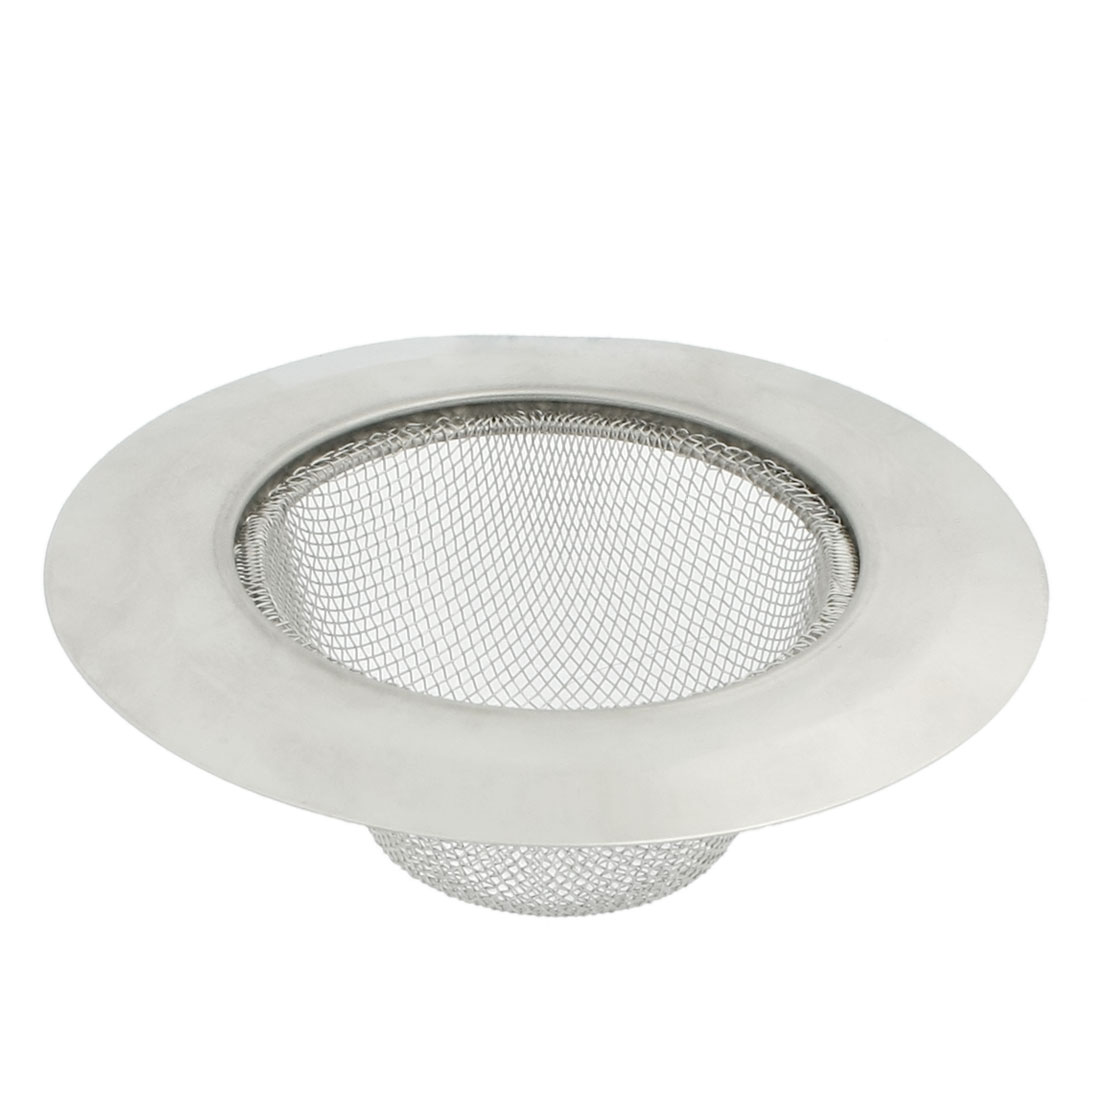 2.5 Inch Diameter Stainless Steel Sink Basin Strainer Ttopper - image 1 of 1